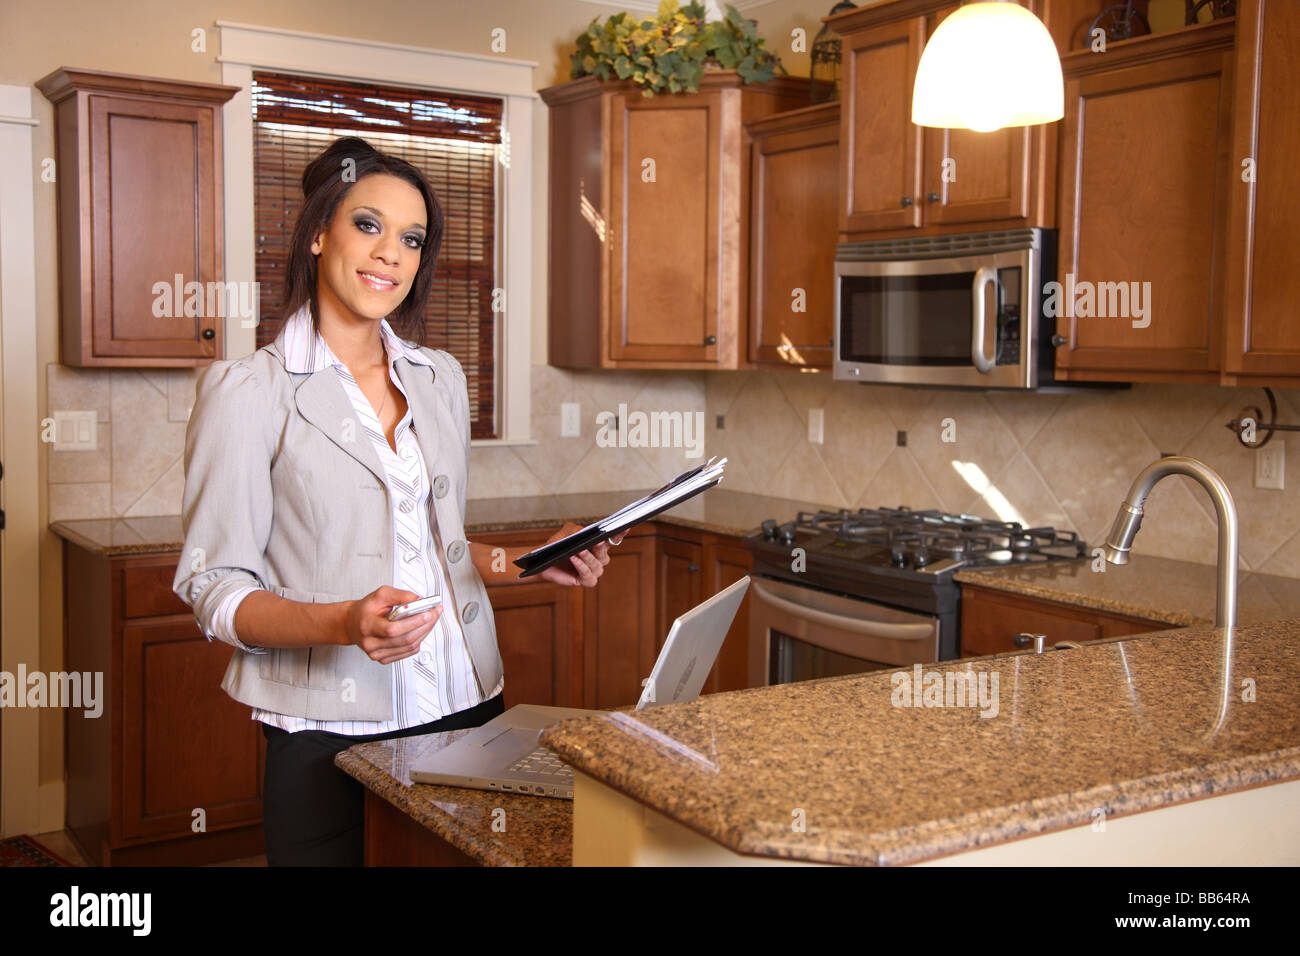 Realtor with paperwork laptop and cell phone in kitchen - Stock Image